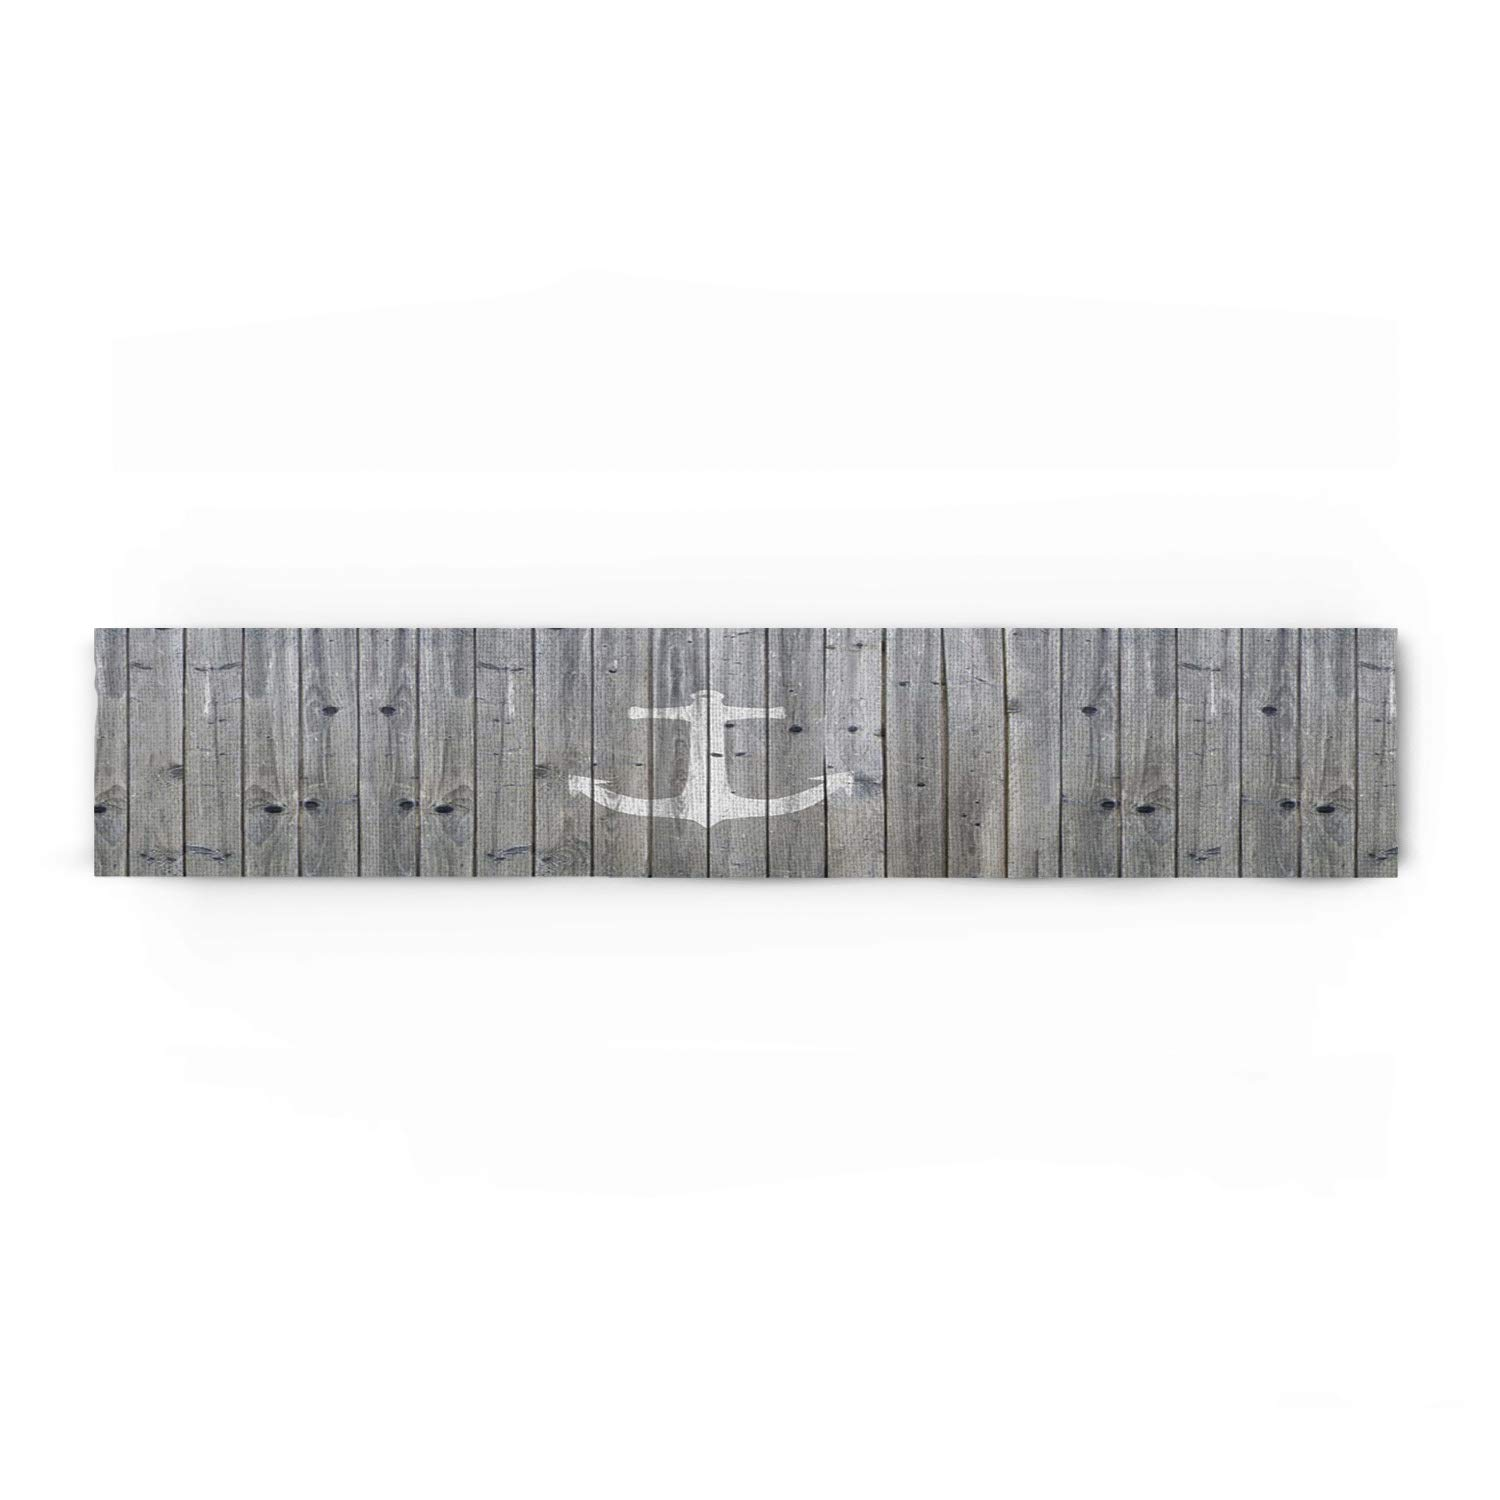 Beauty Decor Polyester Fabric Grey White Natural Rectangle Lace Table Runners Retro Wood Grain with Anchor, 18x72inch